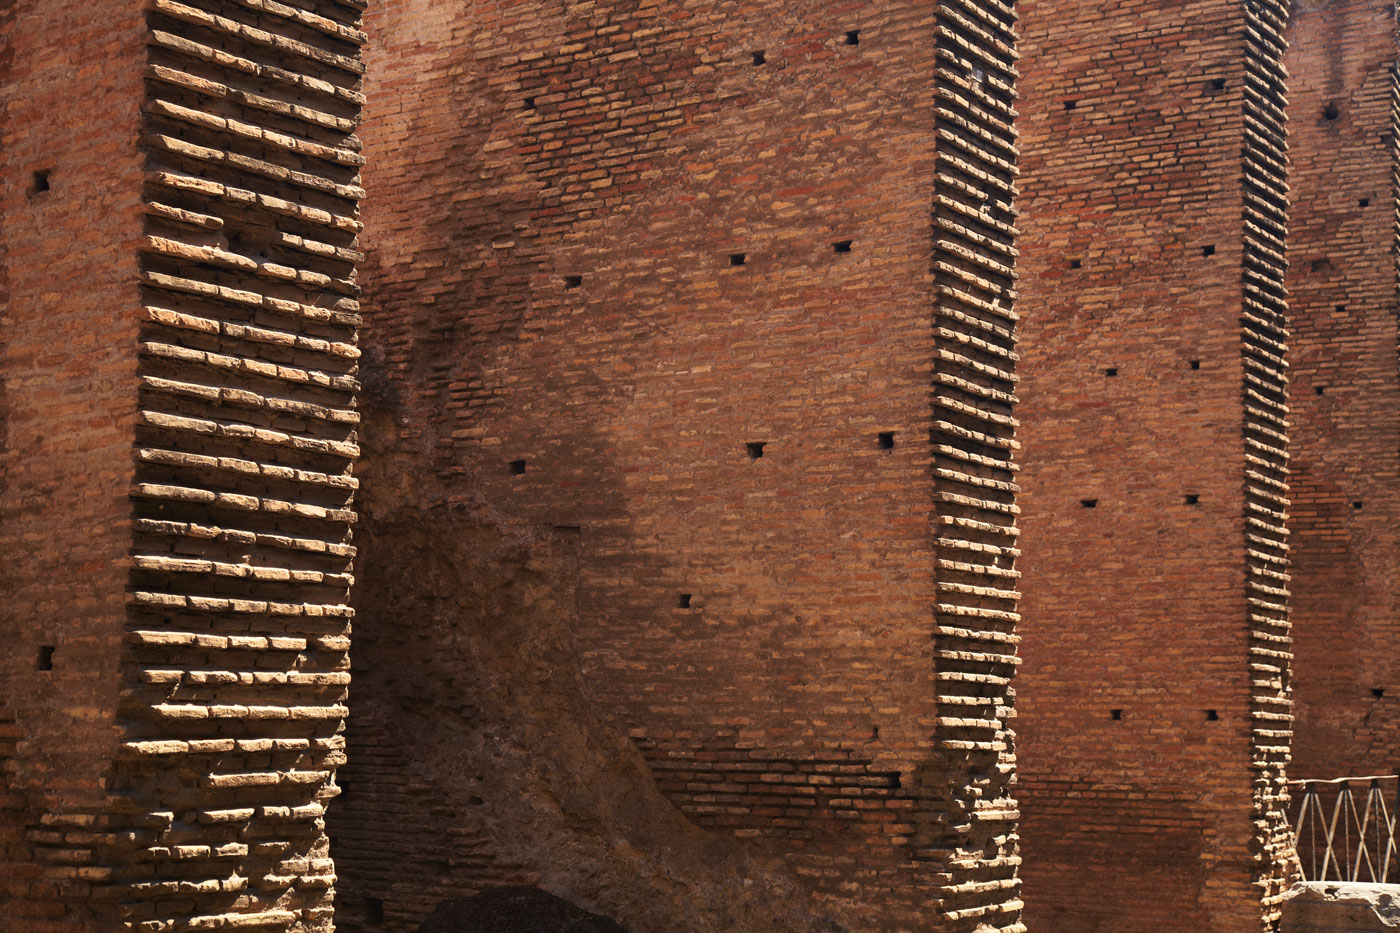 Bricks, Colosseum, Rome